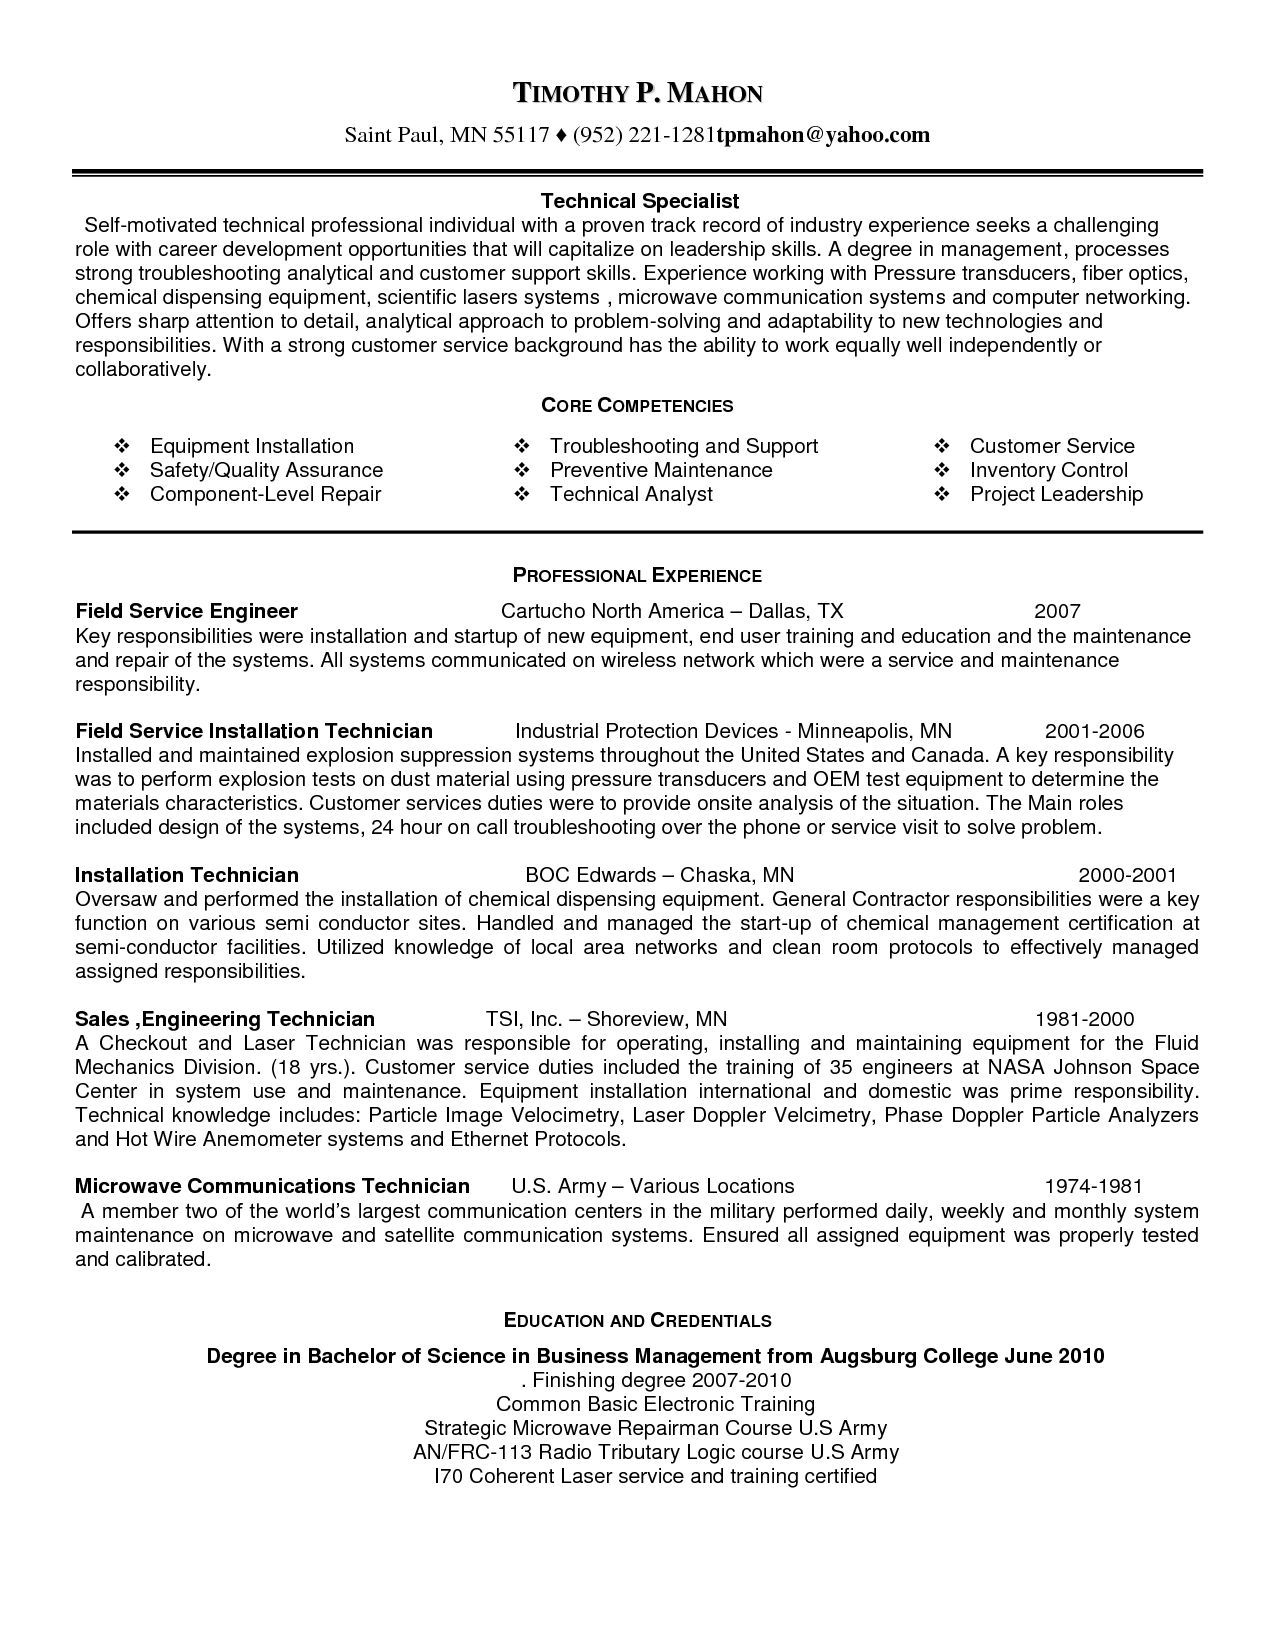 Auto Mechanic Resume Sample Captivating Sle Resume For Auto Mechanic 28 Images Car Mechanics Resume Sales .